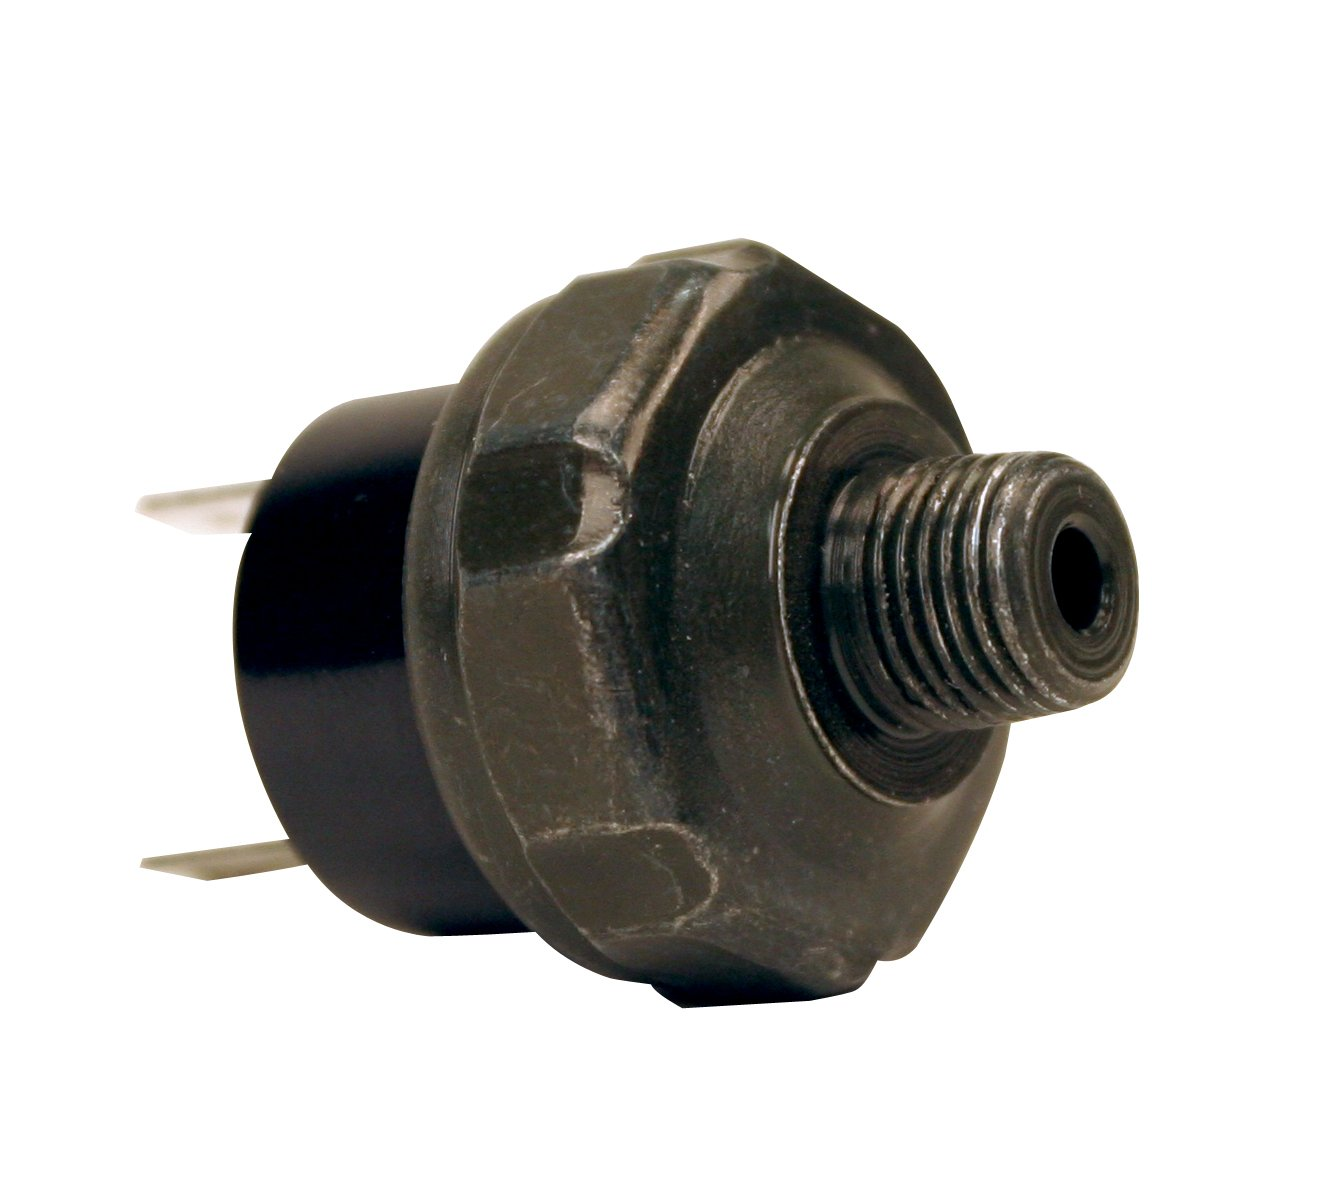 Viair 90101 85-105 PSI Pressure Switch